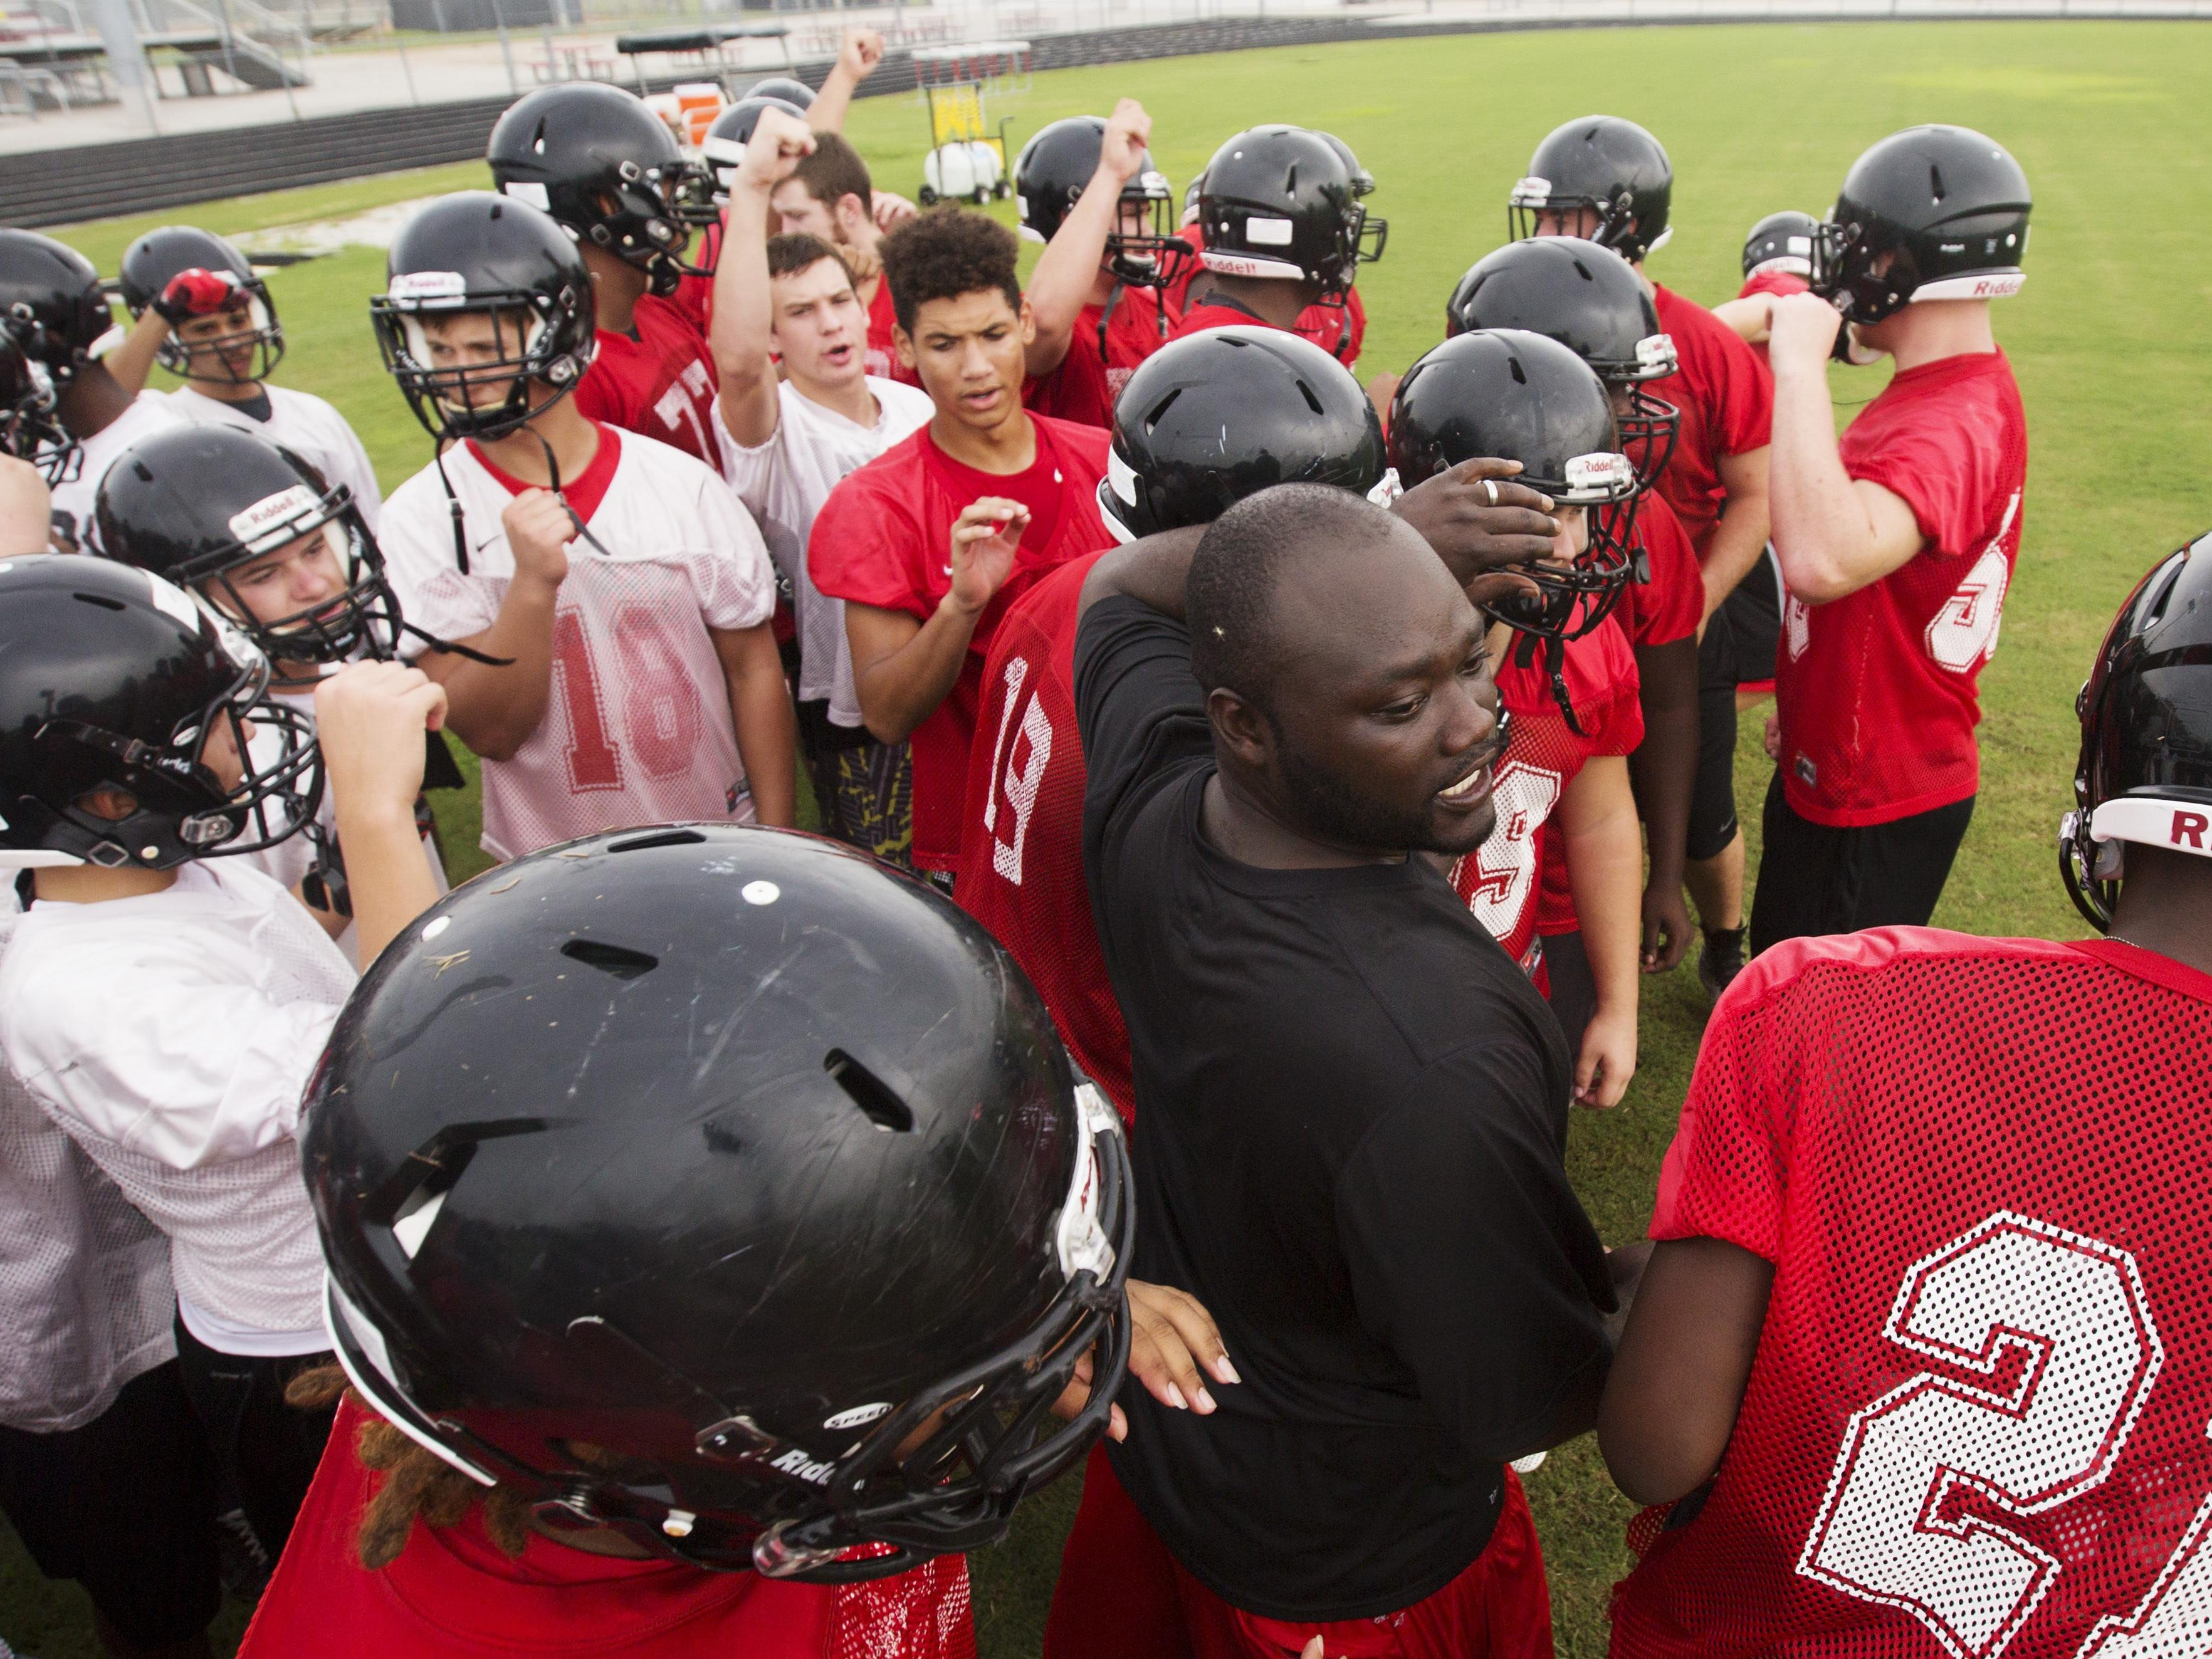 Andrew West/News-Press Anthony Dixon is taking over the reigns as head coach of the South Fort Myers High School football team.